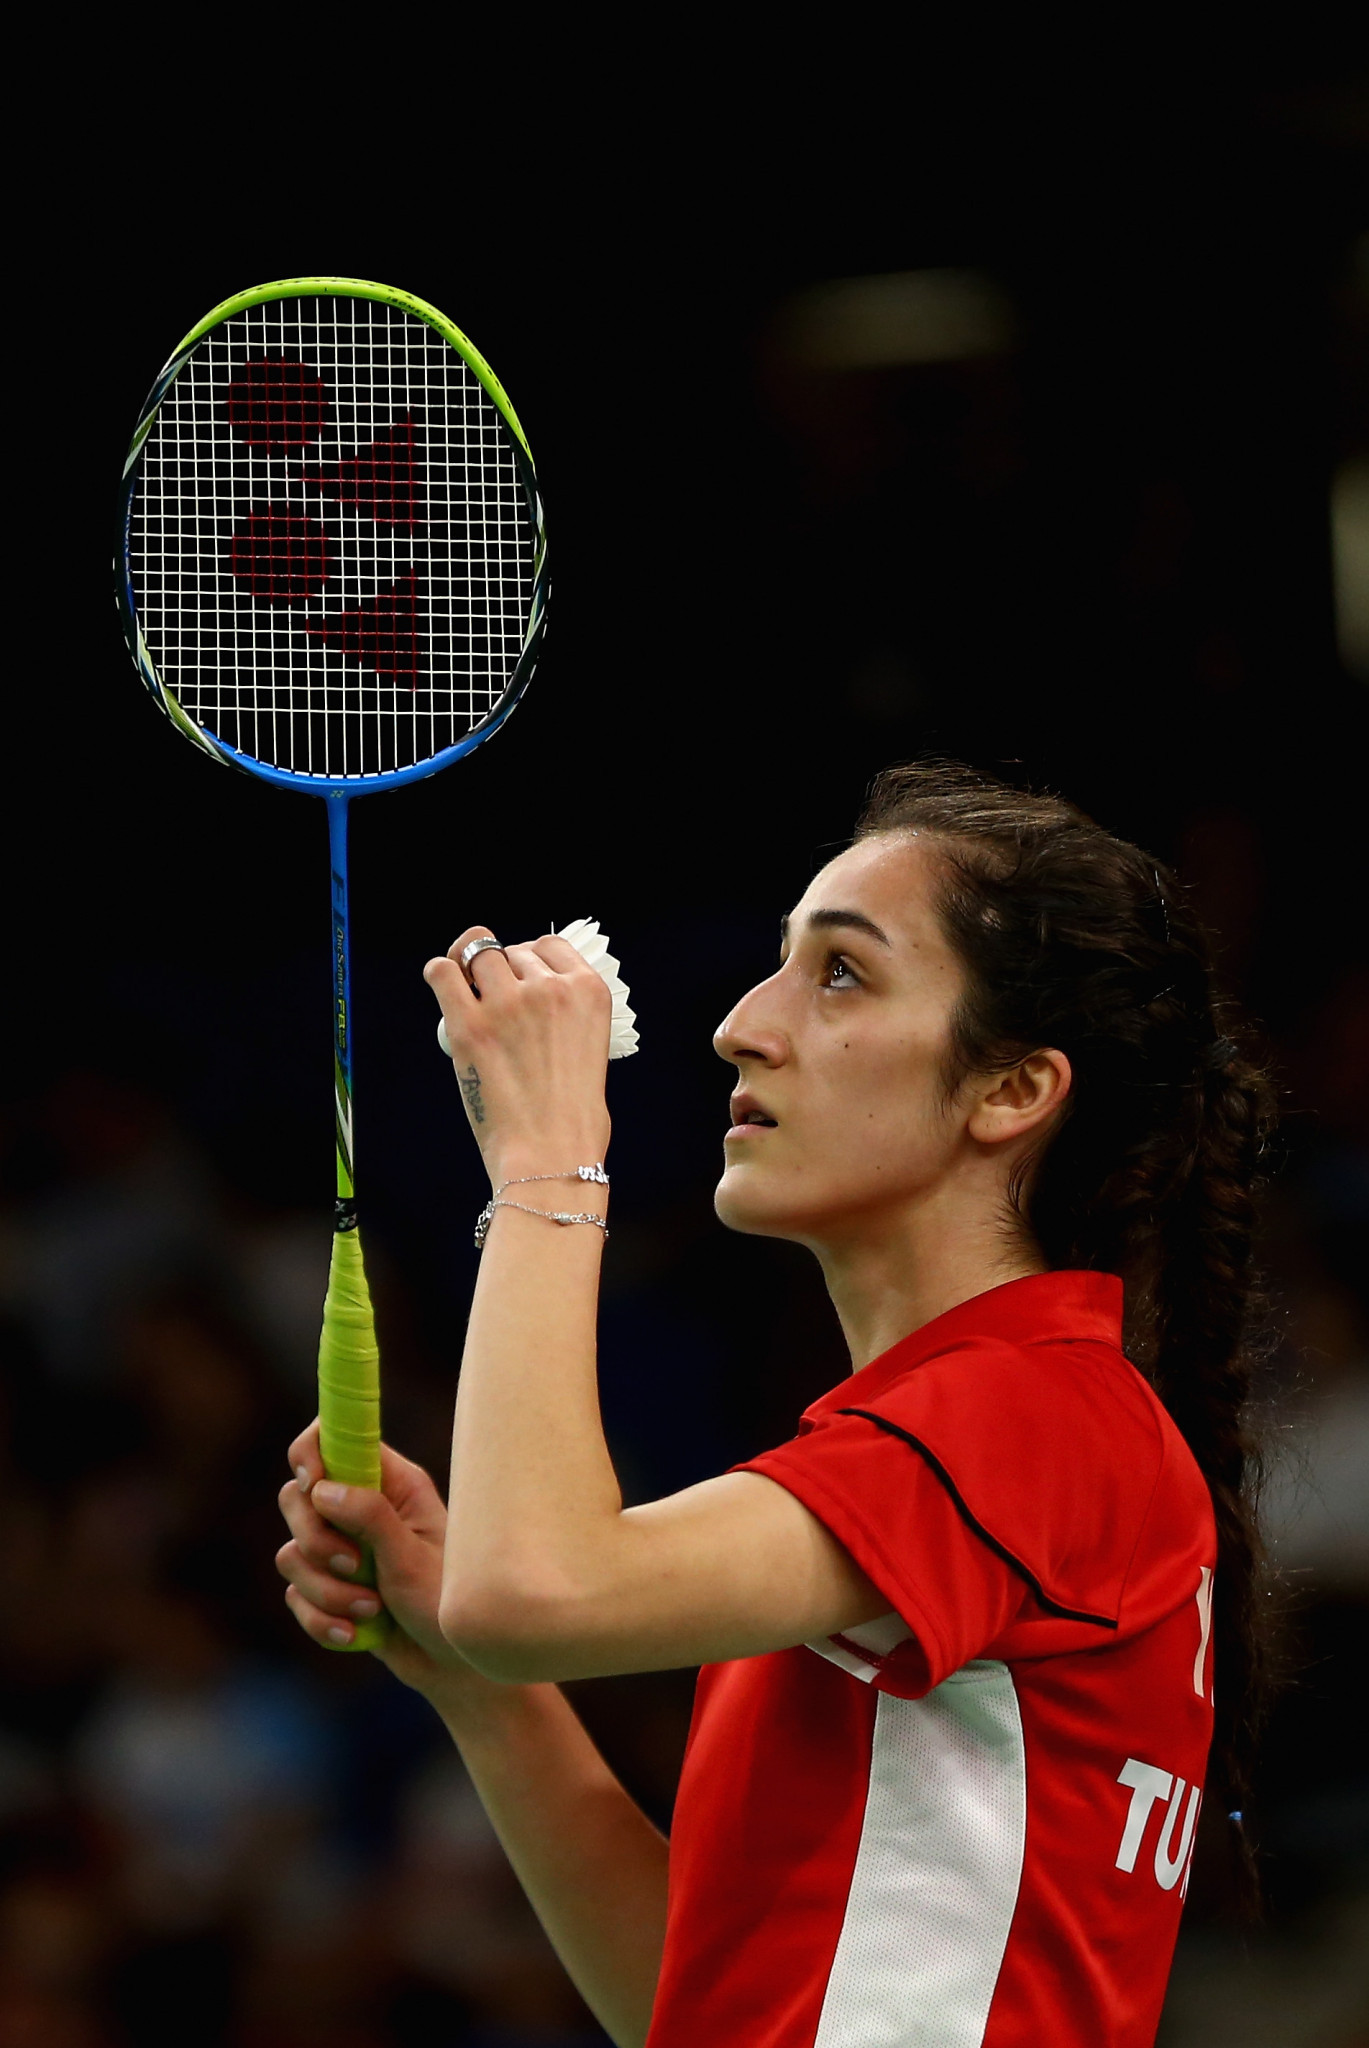 Yiğit told to self-isolate as COVID-19 continues to hit All England Open Badminton Championships